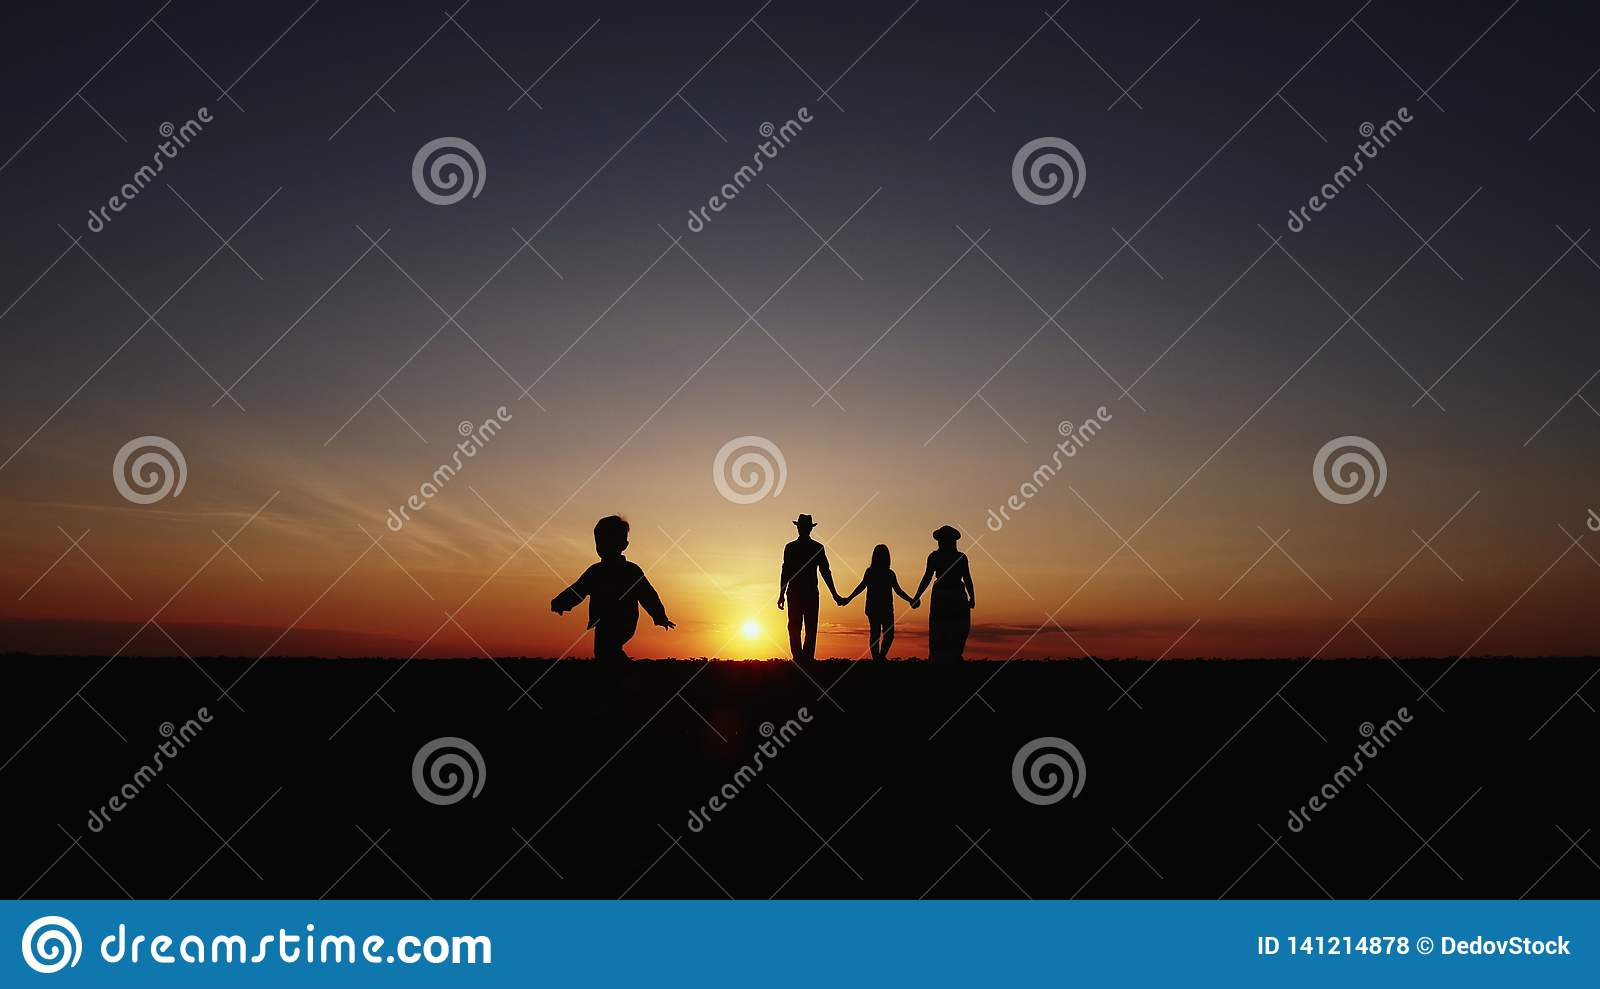 Slow Motion Silhouette at sunset happy family walking